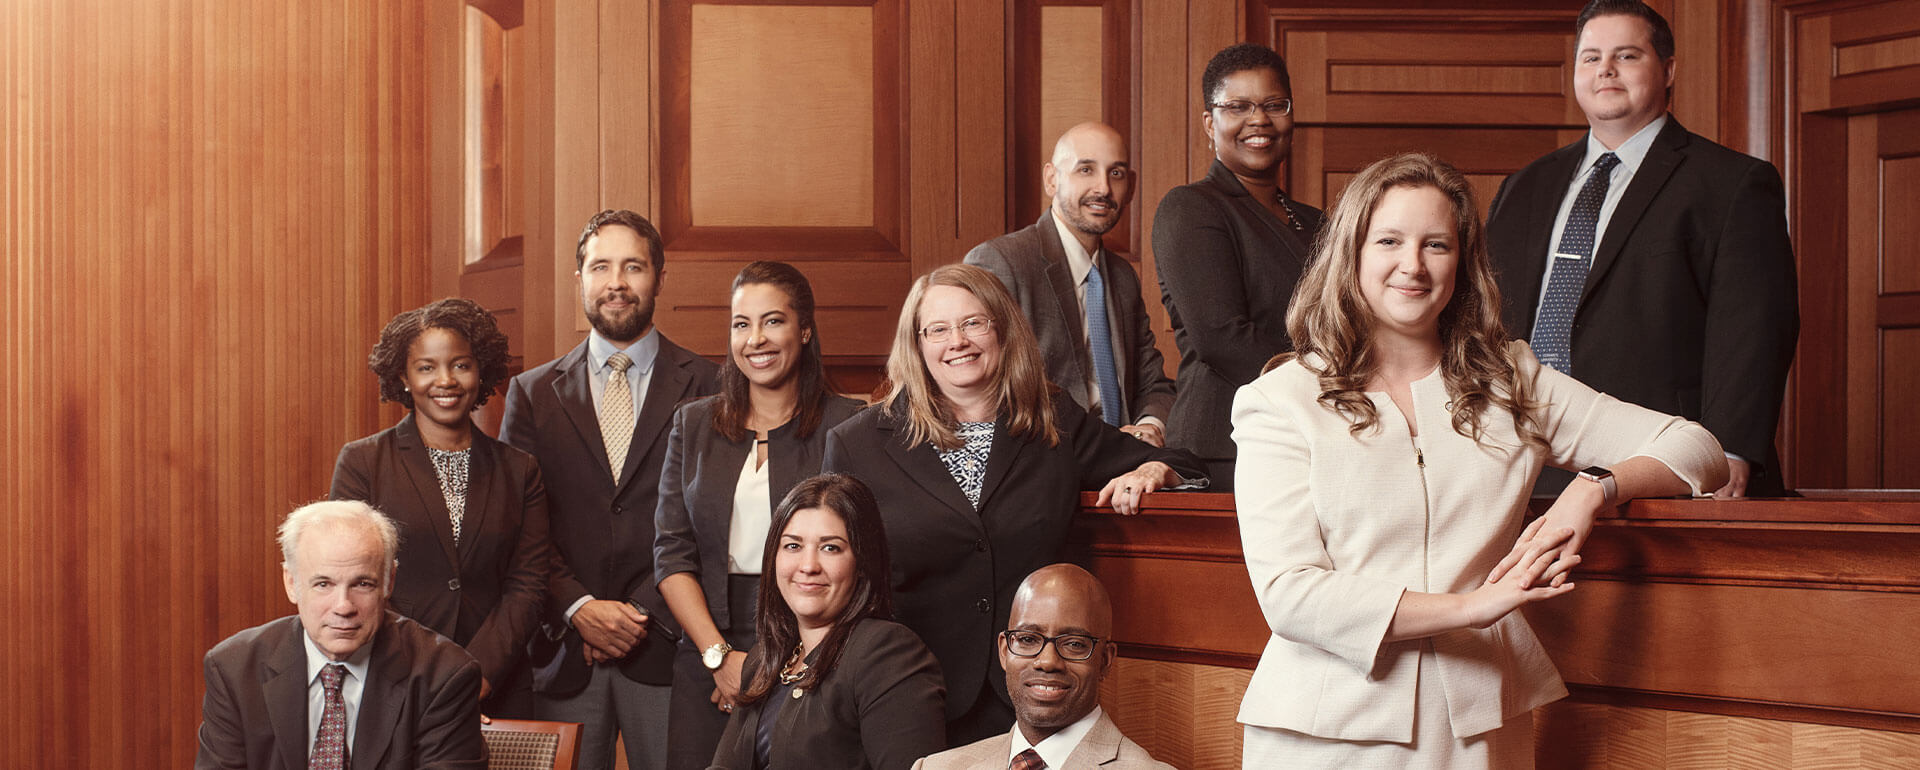 Law Success instructors pose in Law Courtroom.